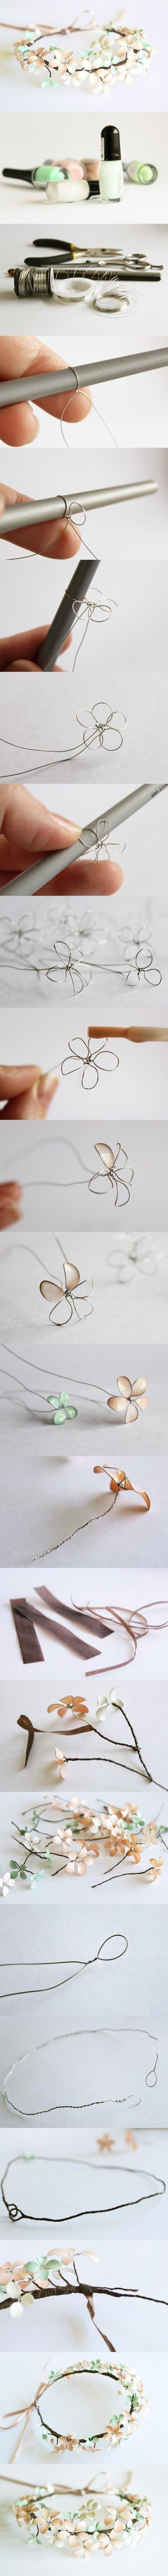 DIY flower crown using wires and nail polish